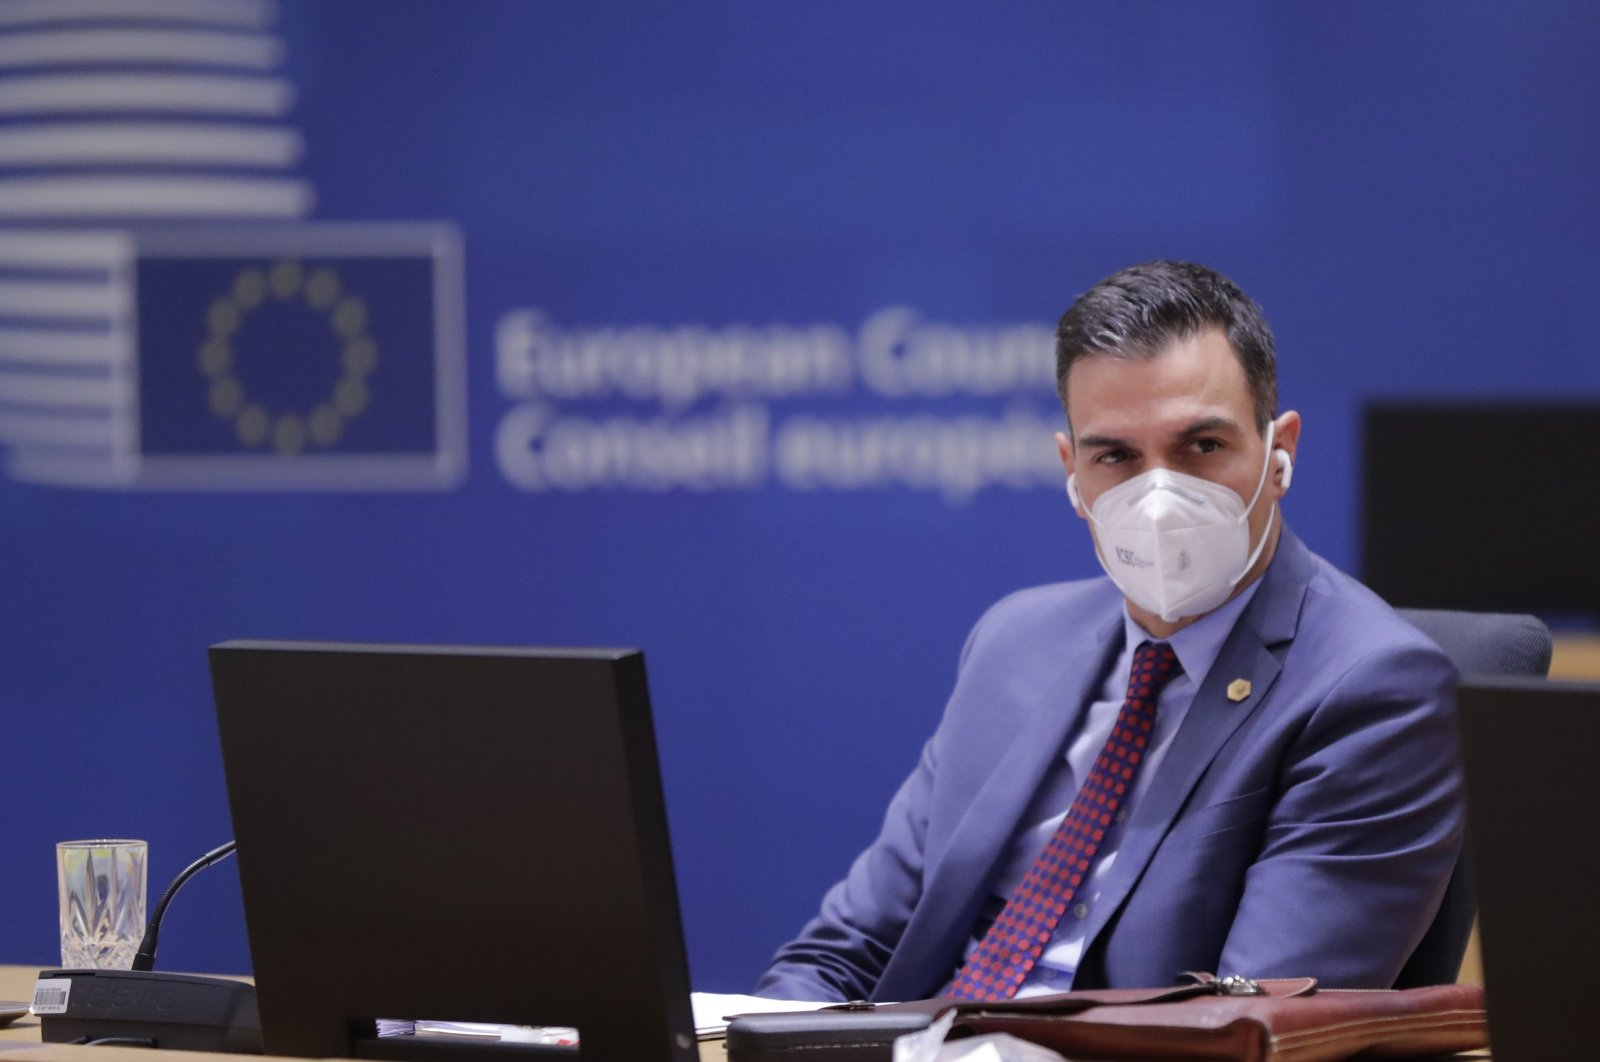 Spain's Prime Minister Pedro Sanchez attends a round table meeting at an EU summit in Brussels, Dec. 11, 2020. (AP Photo)